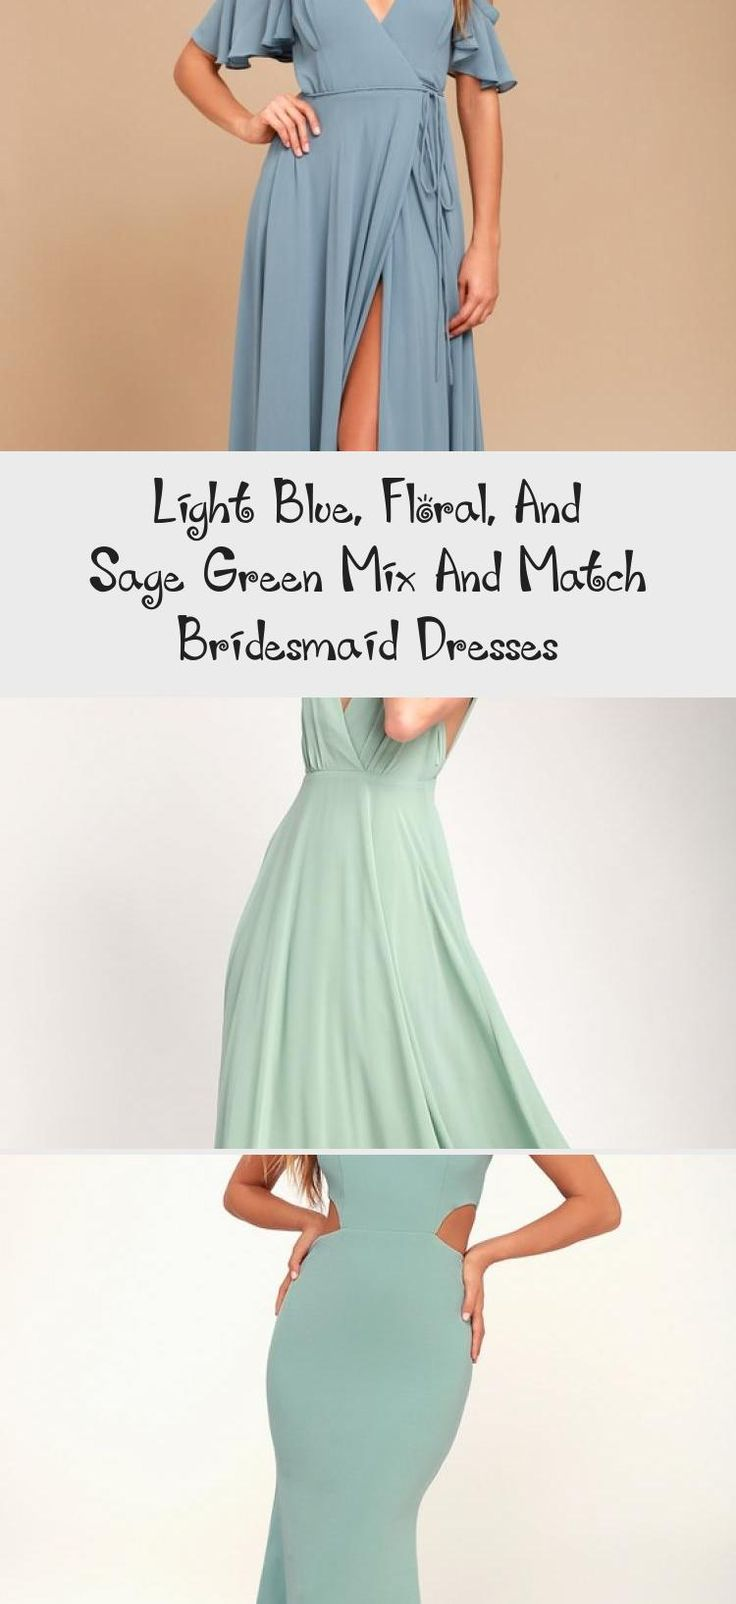 Blue floral and mist sage green mismatched bridesmaid dresses by Jenny Yoo #LavenderBridesmaidDresses #BridesmaidDressesColors #BridesmaidDressesMauve #BridesmaidDressesTwoPiece #DavidsBridalBridesmaidDresses